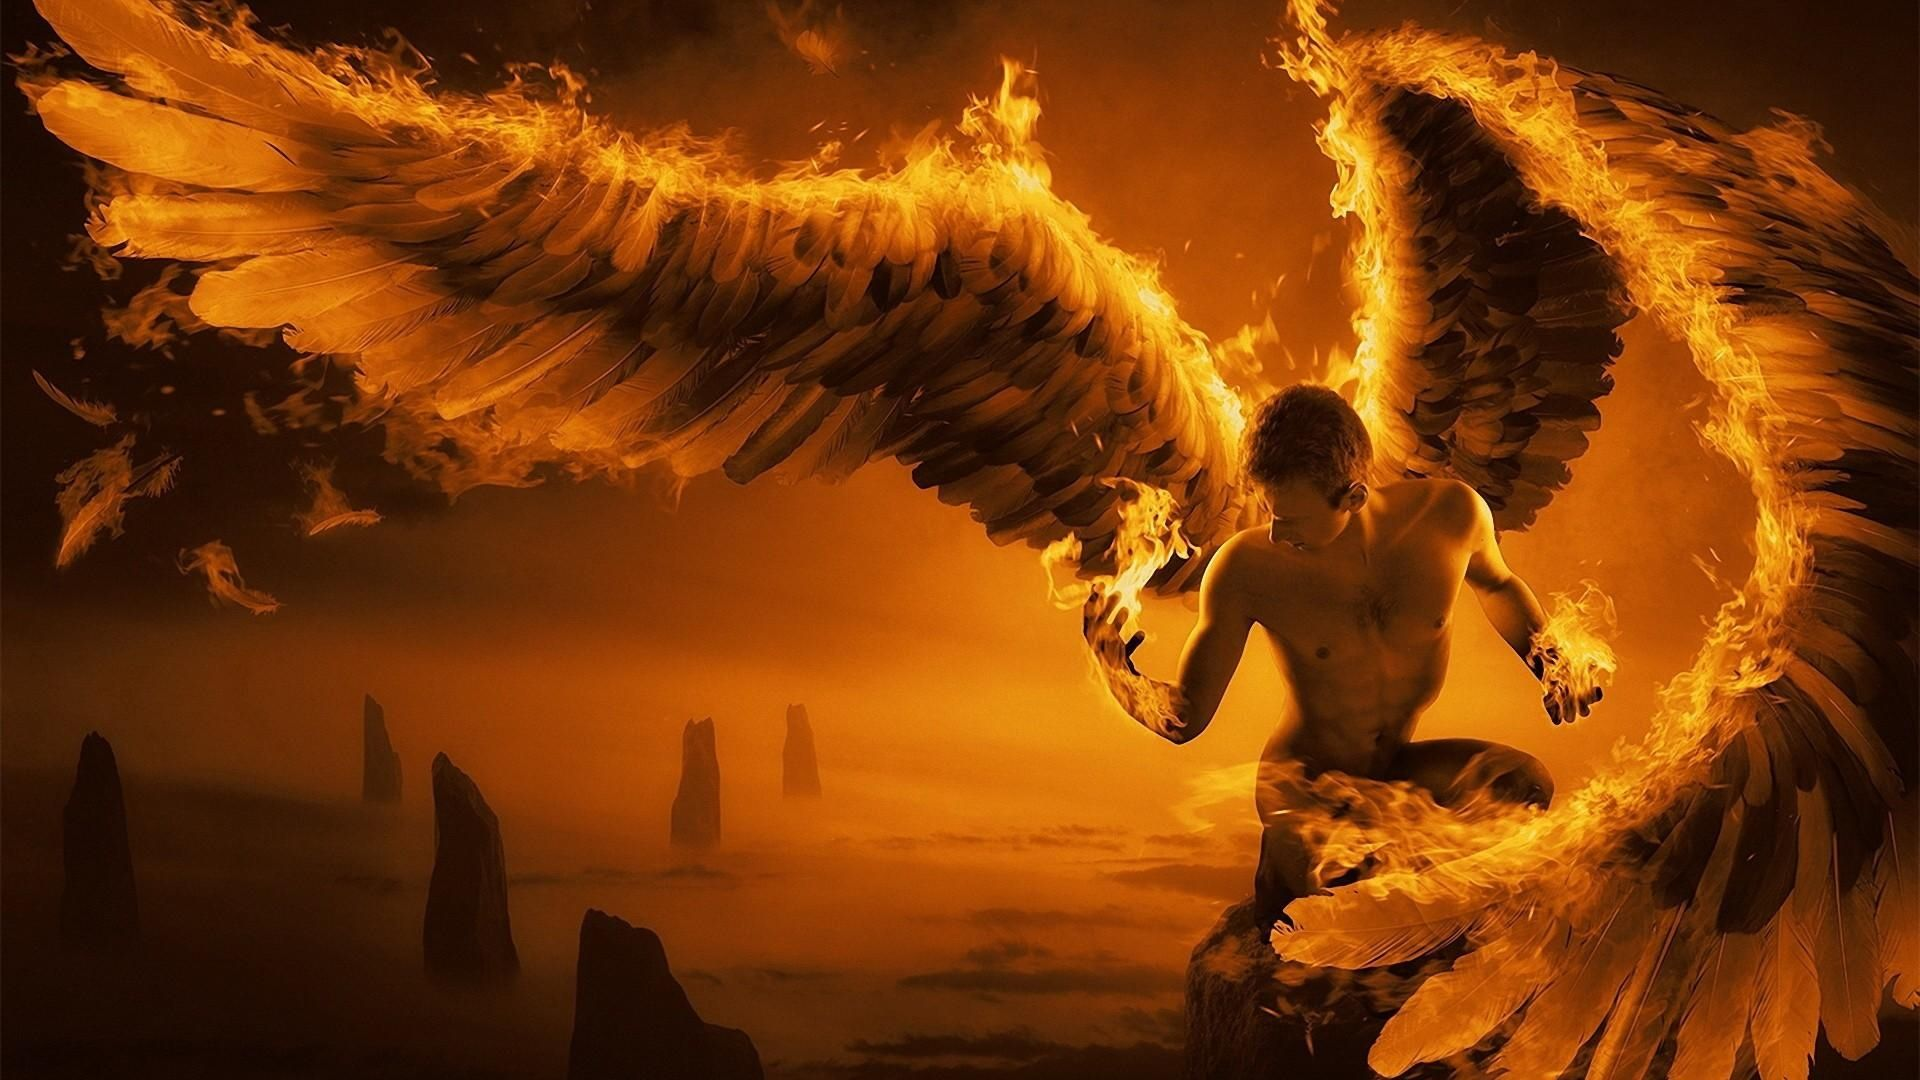 Full HD 1080p Angel Wallpapers HD, Desktop Backgrounds 1920x1080 | angels in 2019 | Angel ...